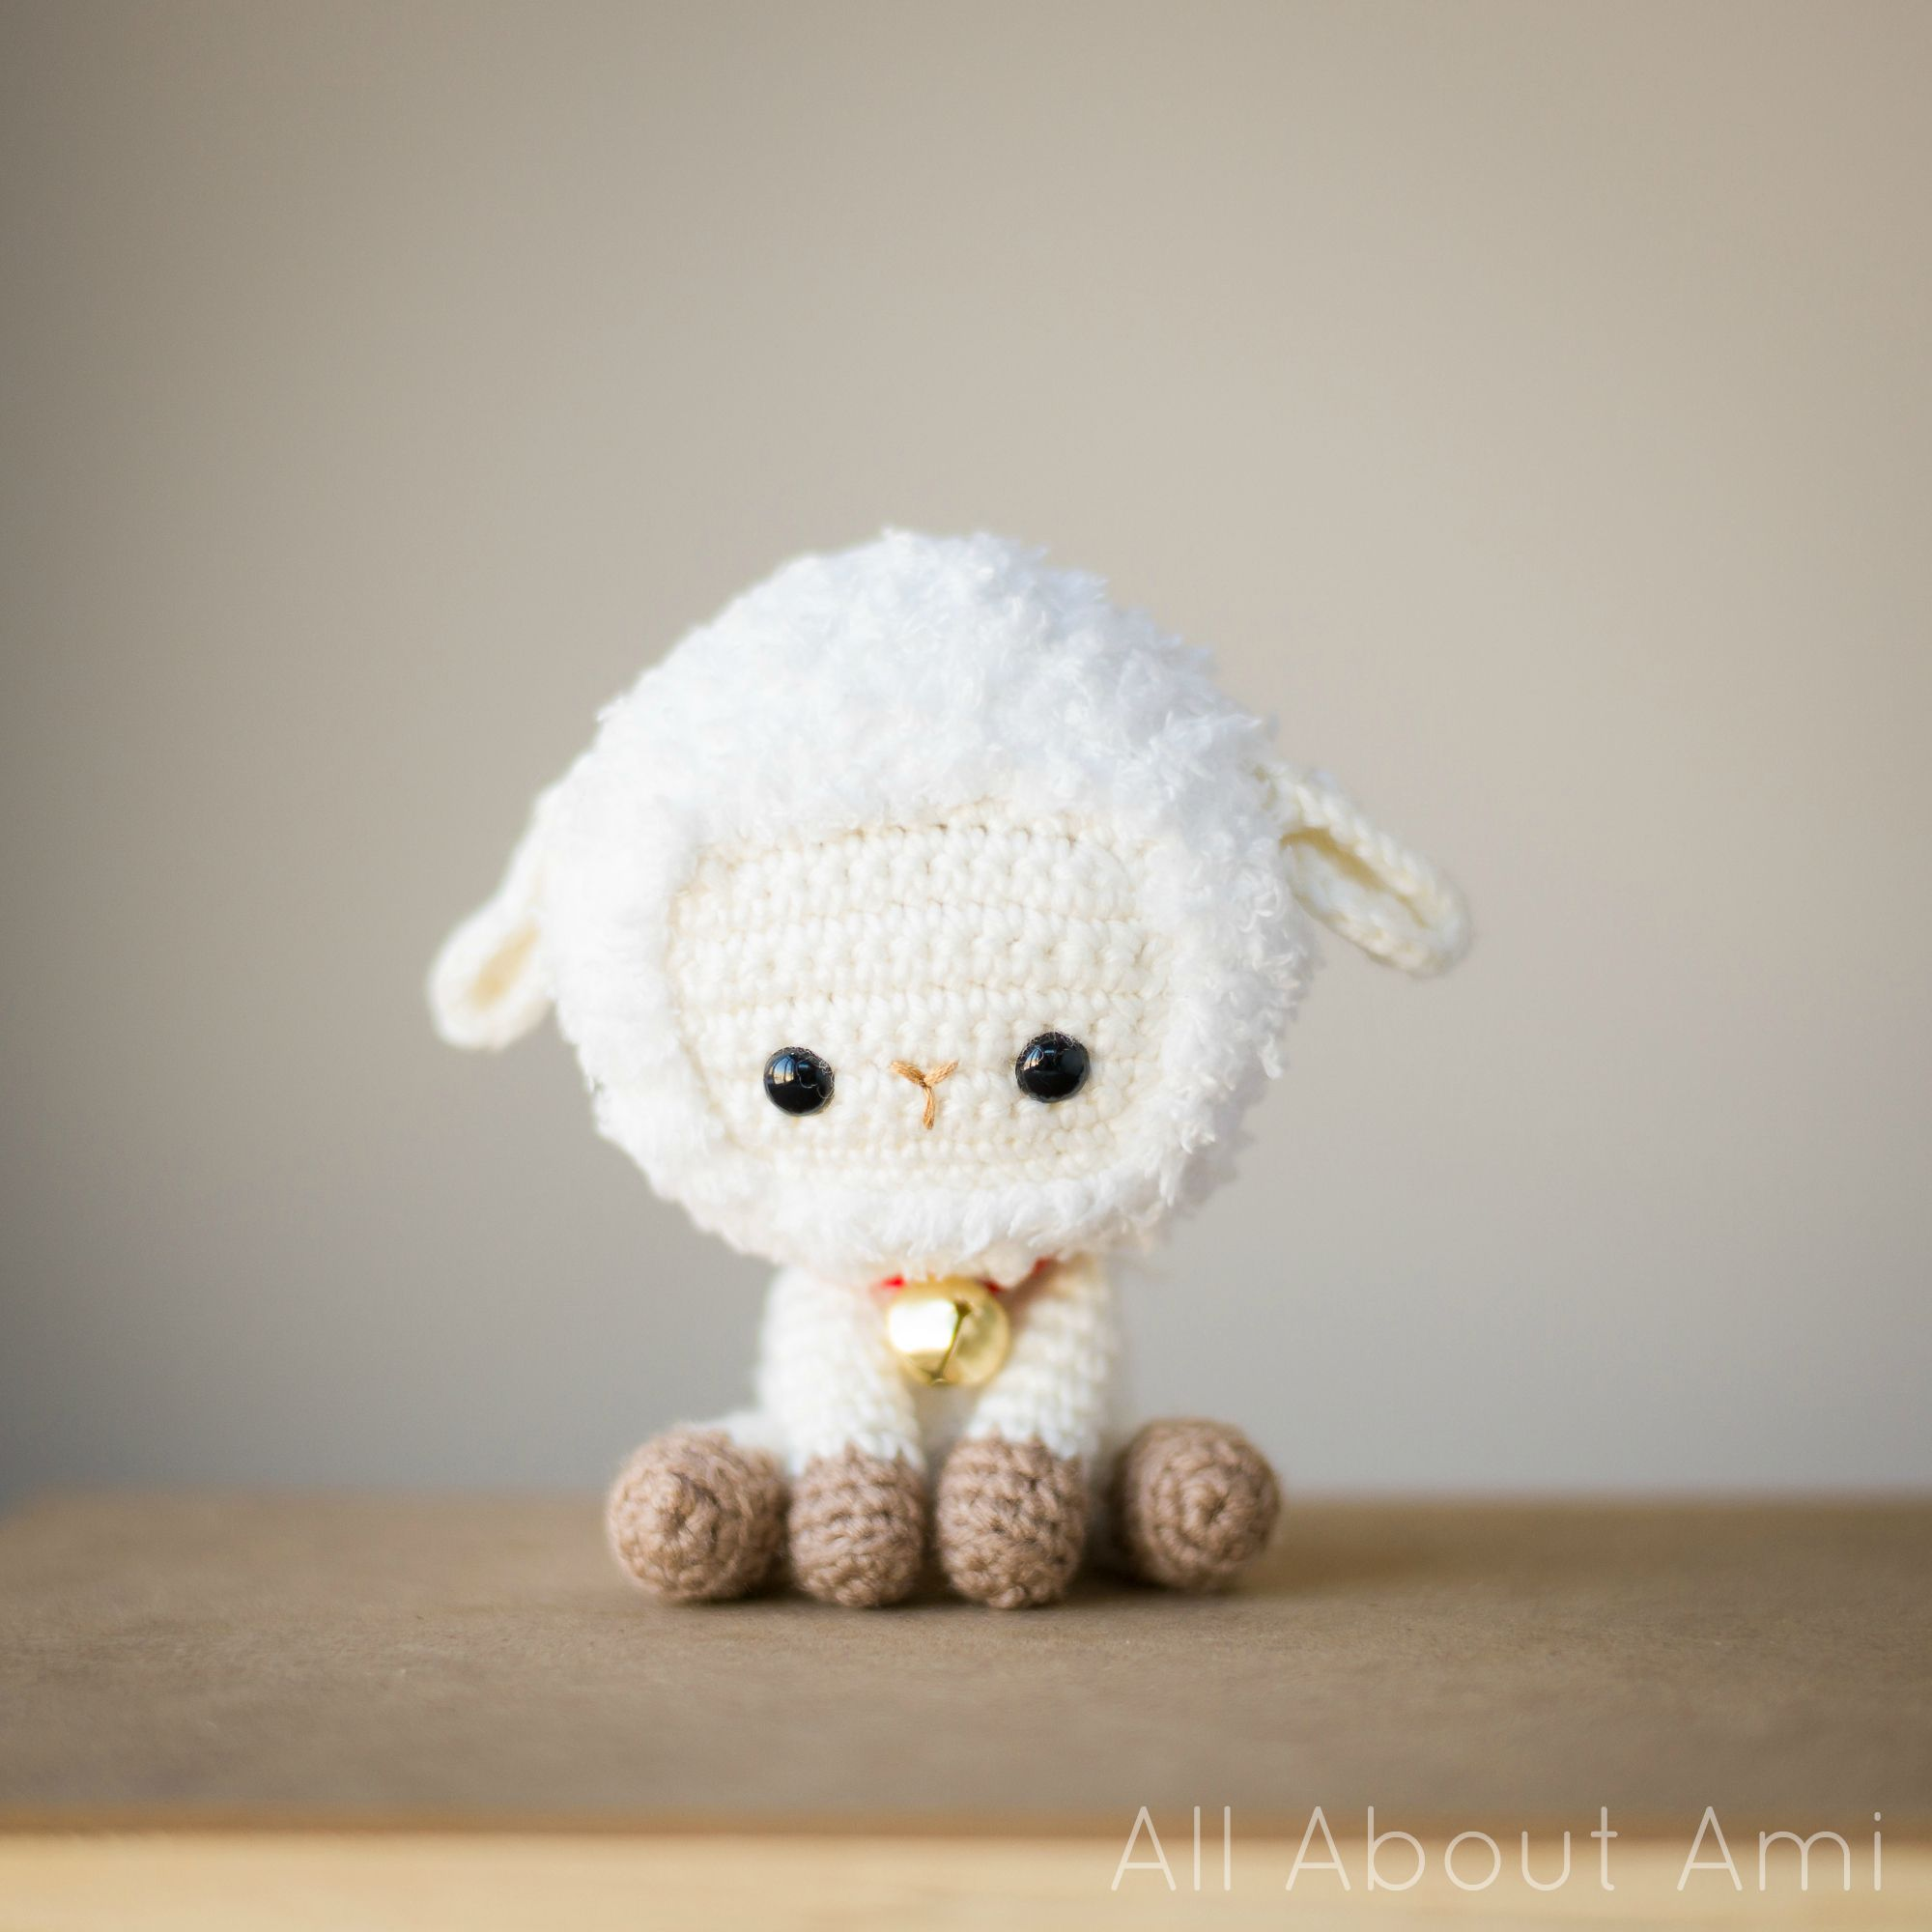 Chinese new year sheep/lamb - Full step by step blog post & free crochet pattern available!